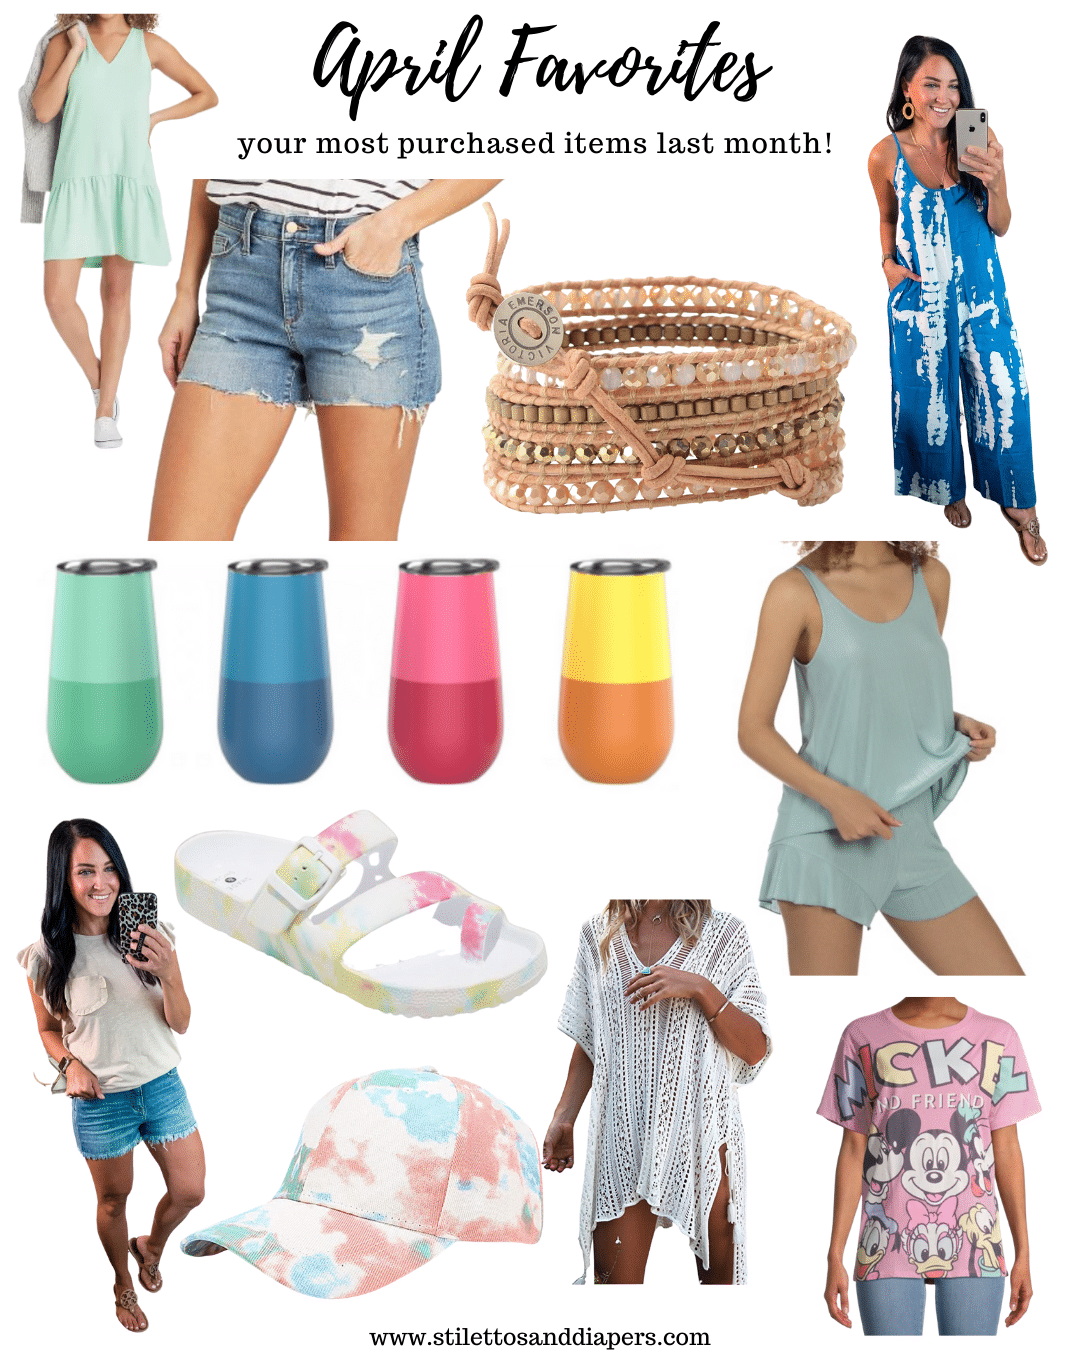 April Favorite Purchases, Stilettos and Diapers